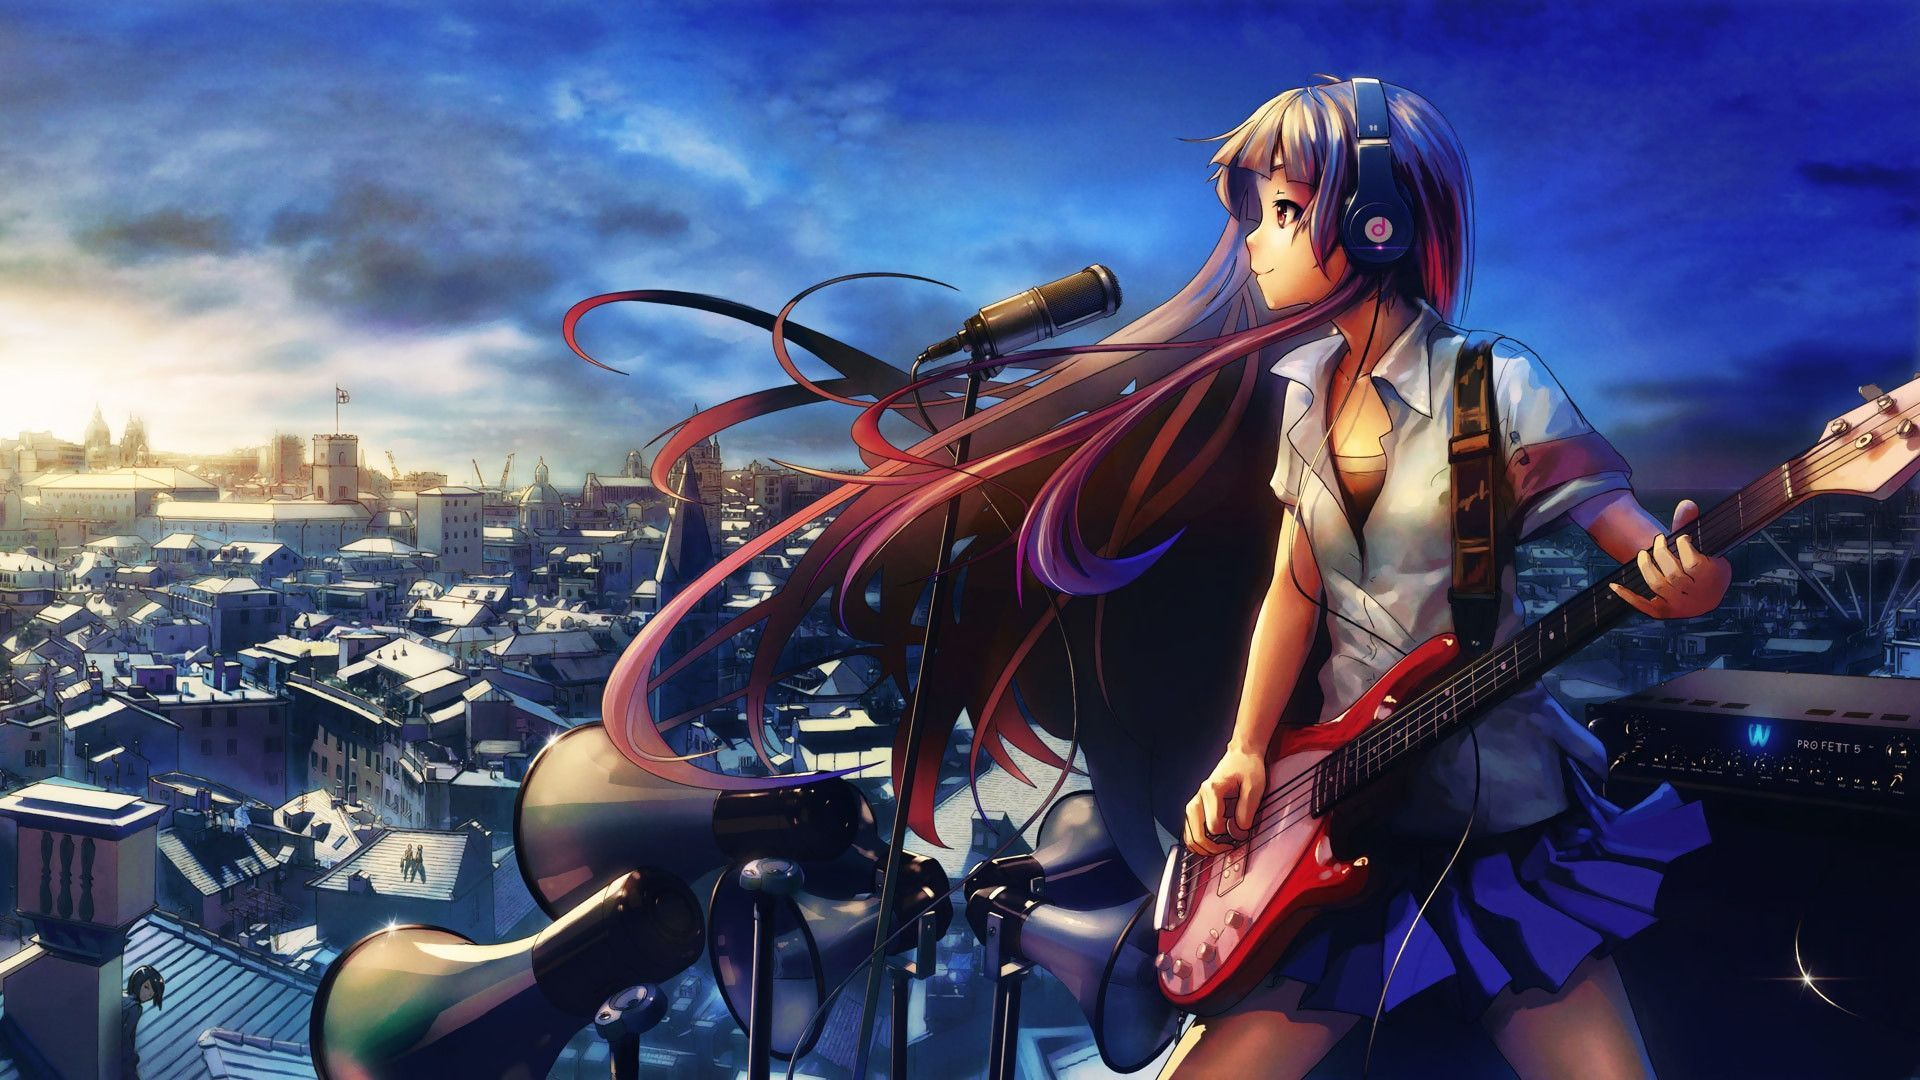 Wallpaper Anime Hd 1080p Pc Download Wallpaper 1920x1080 Girl Guitar Microphone Anime Wallpapers Hd In 2020 Hd Anime Wallpapers Anime Music Anime Wallpaper Download